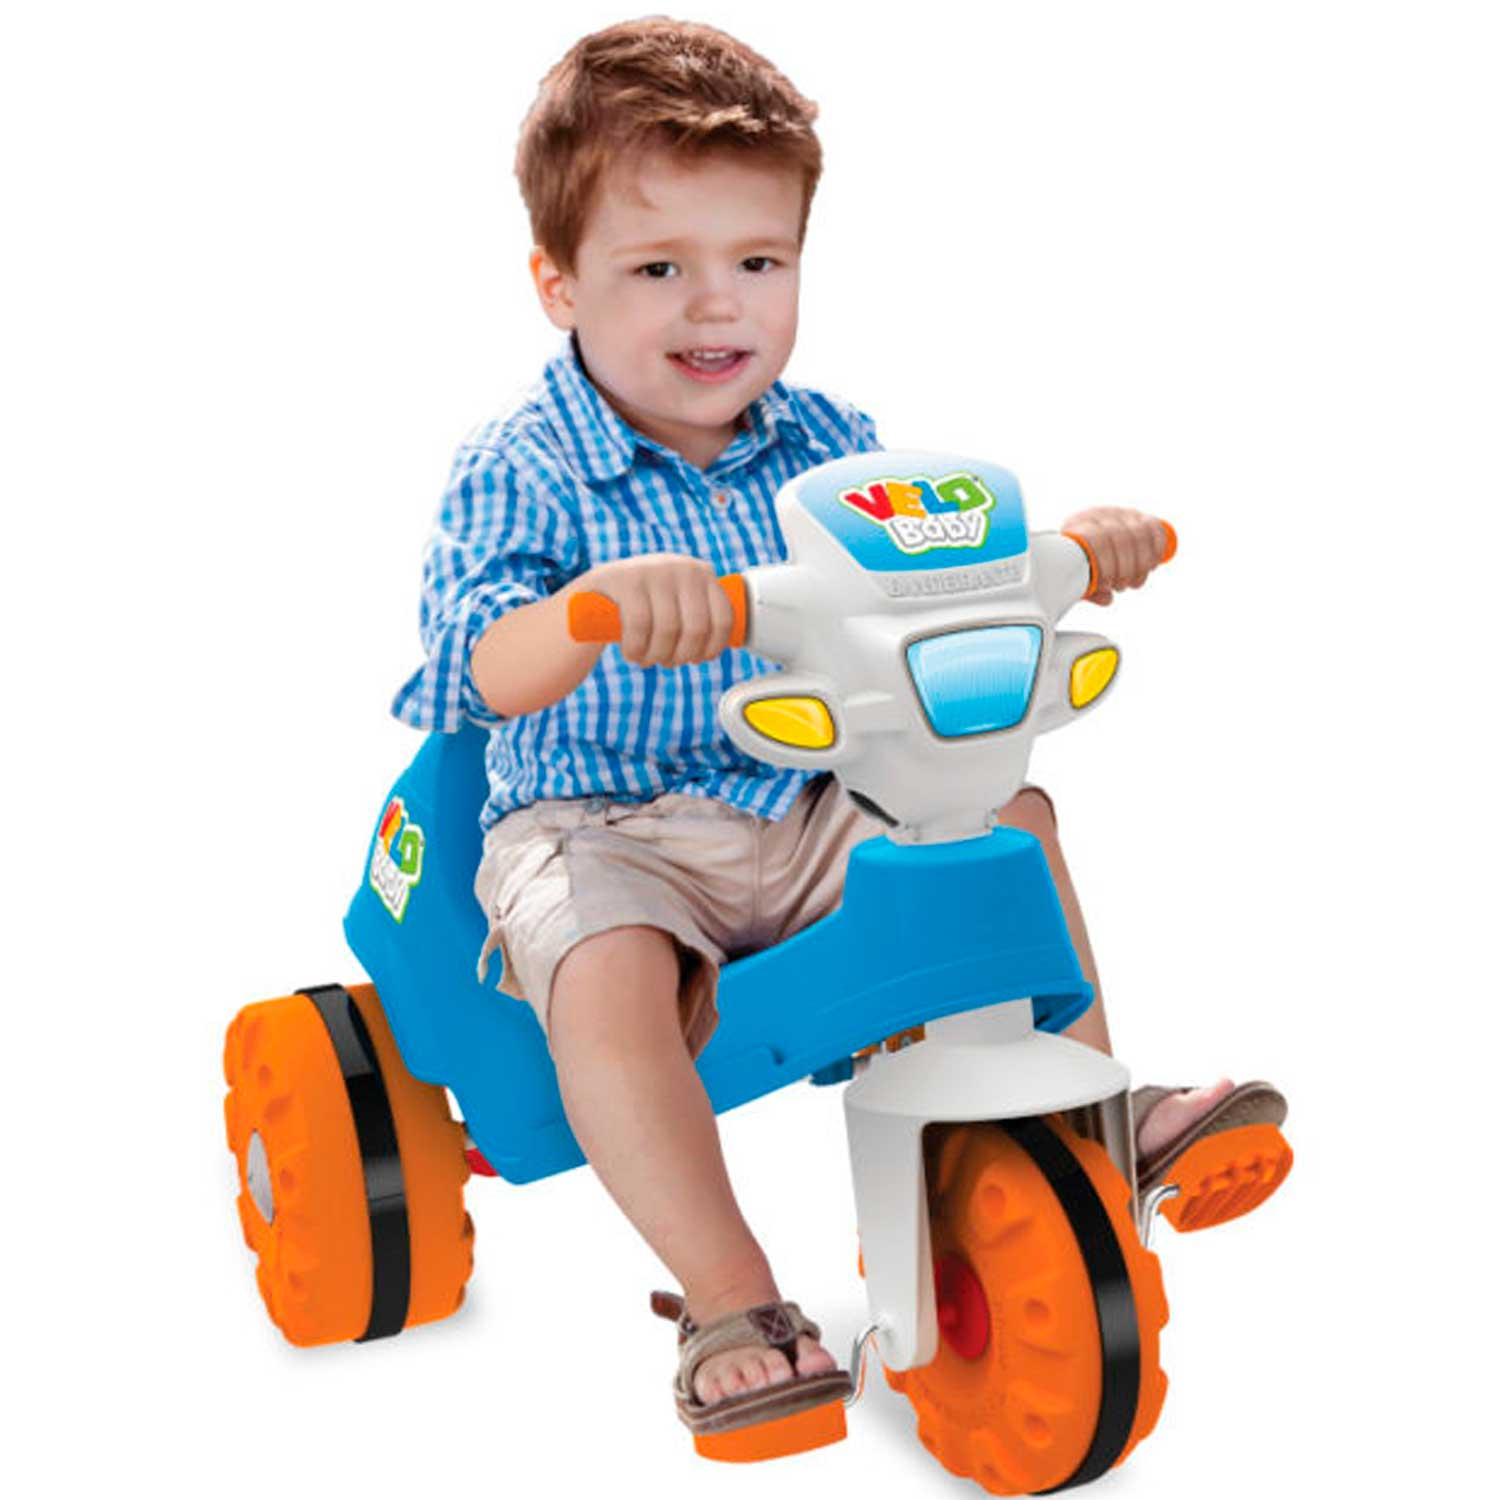 TRICICLO VELOBABY A PEDAL 1A+ BANDEIRANTE REF:206